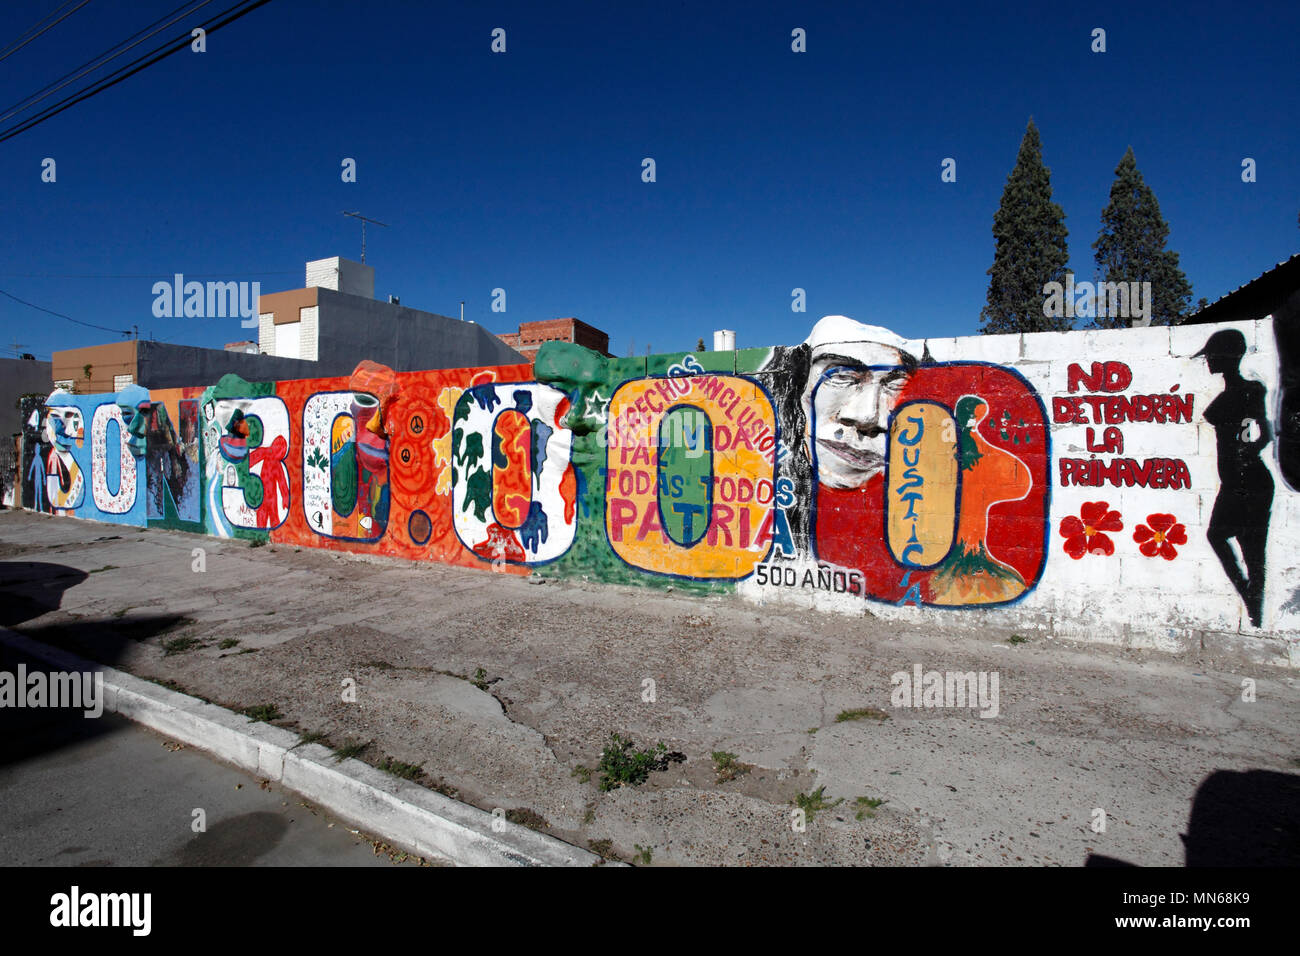 They will not have spring. Wall mural in memory of the disappeared from the regime of the Argentine military. Desaparecidos. The Vanished. 1976-1983.  - Stock Image